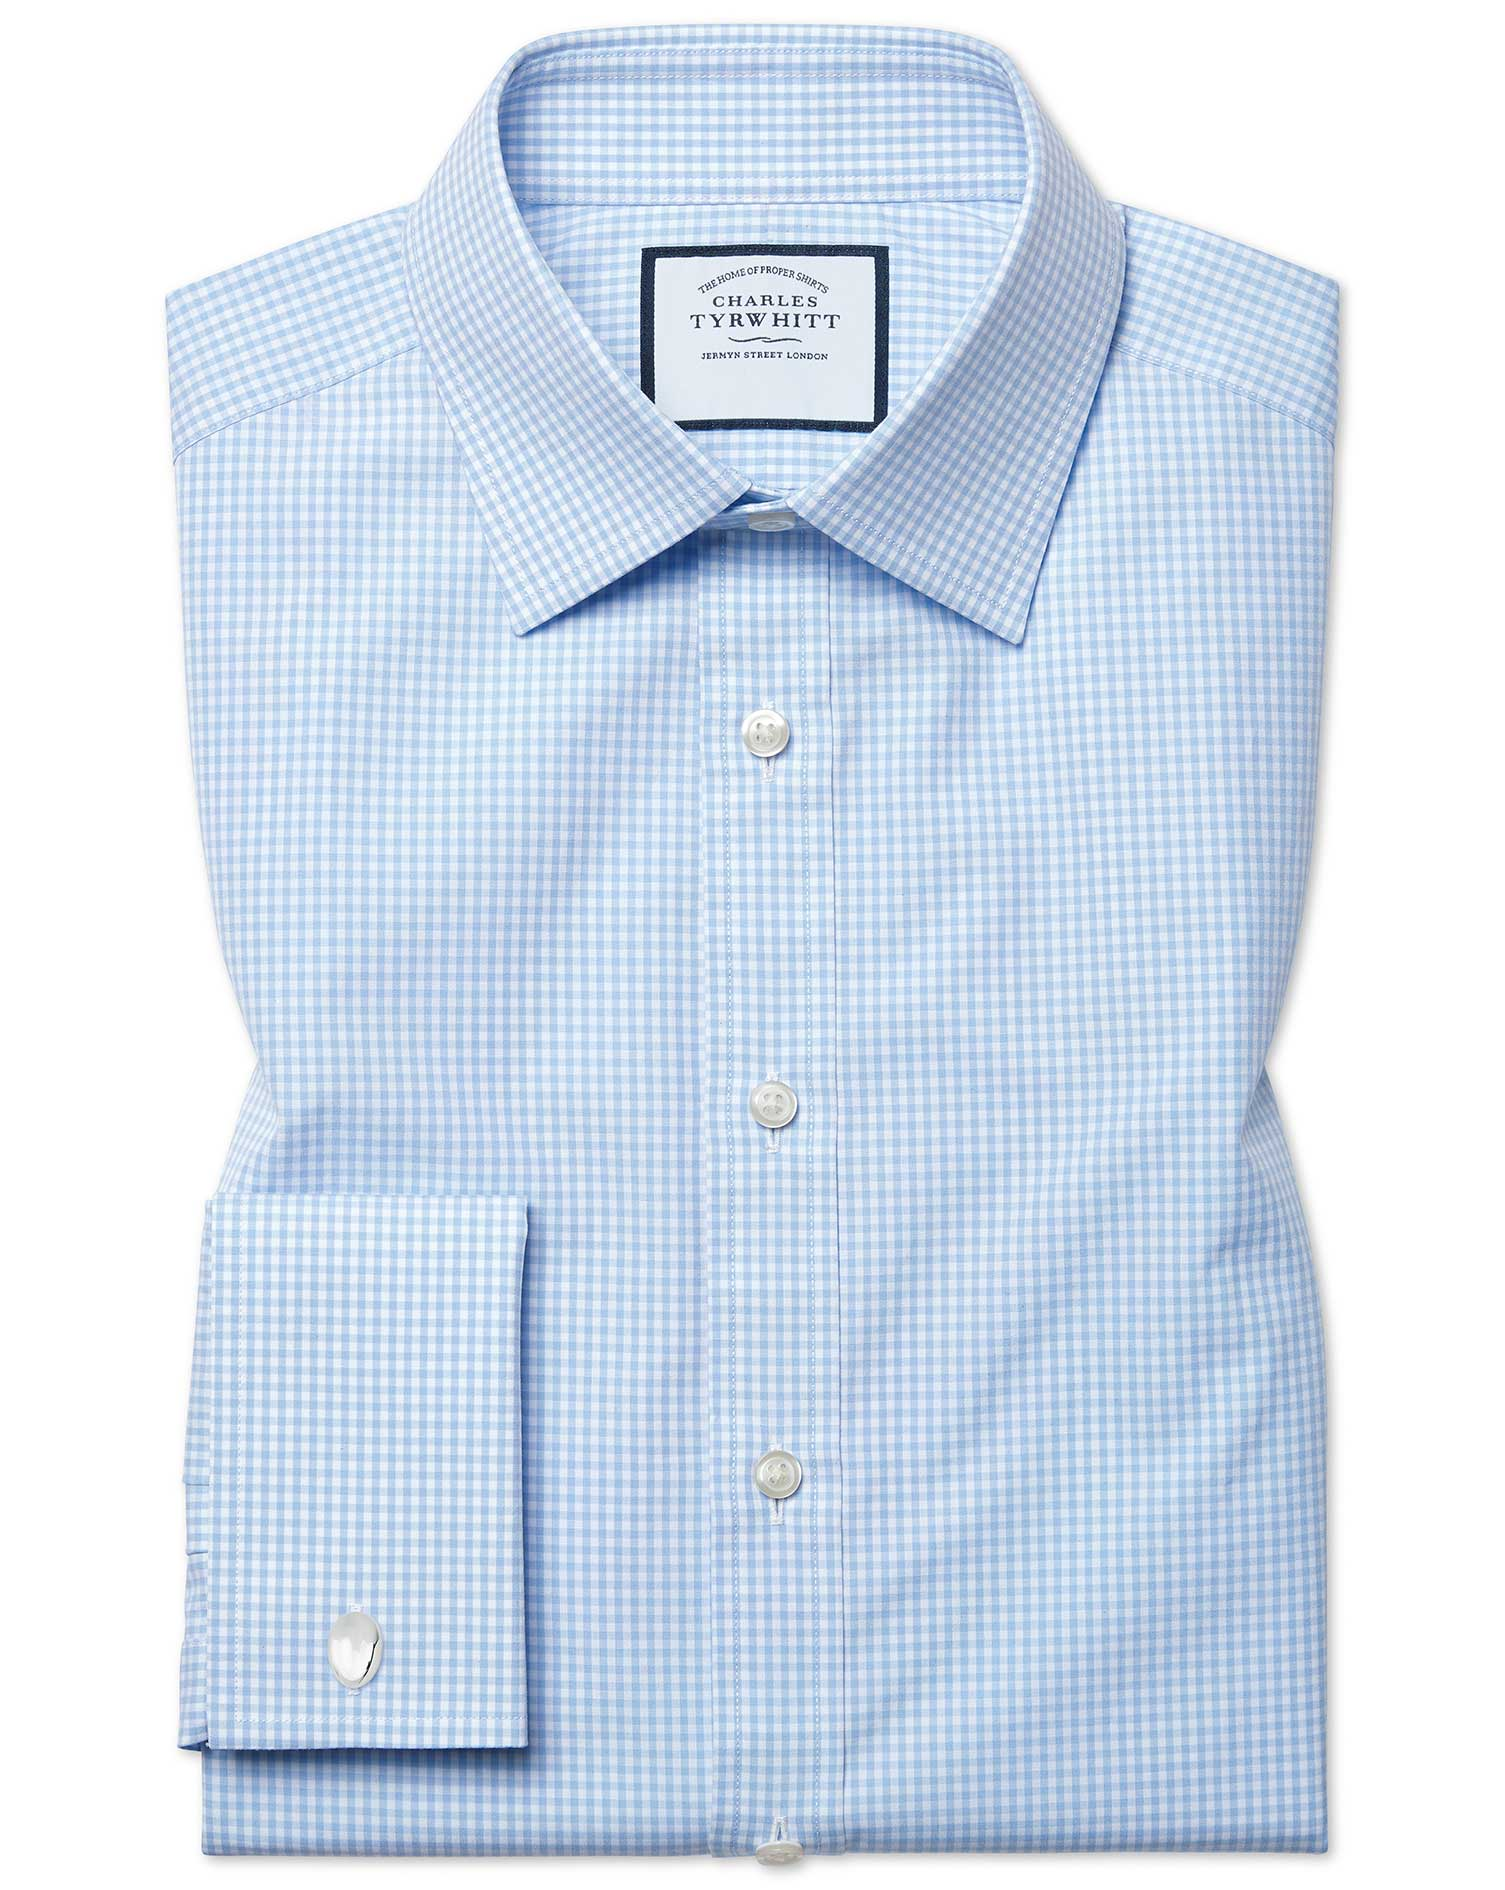 Extra Slim Fit Small Gingham Sky Blue Cotton Formal Shirt Double Cuff Size 16/34 by Charles Tyrwhitt